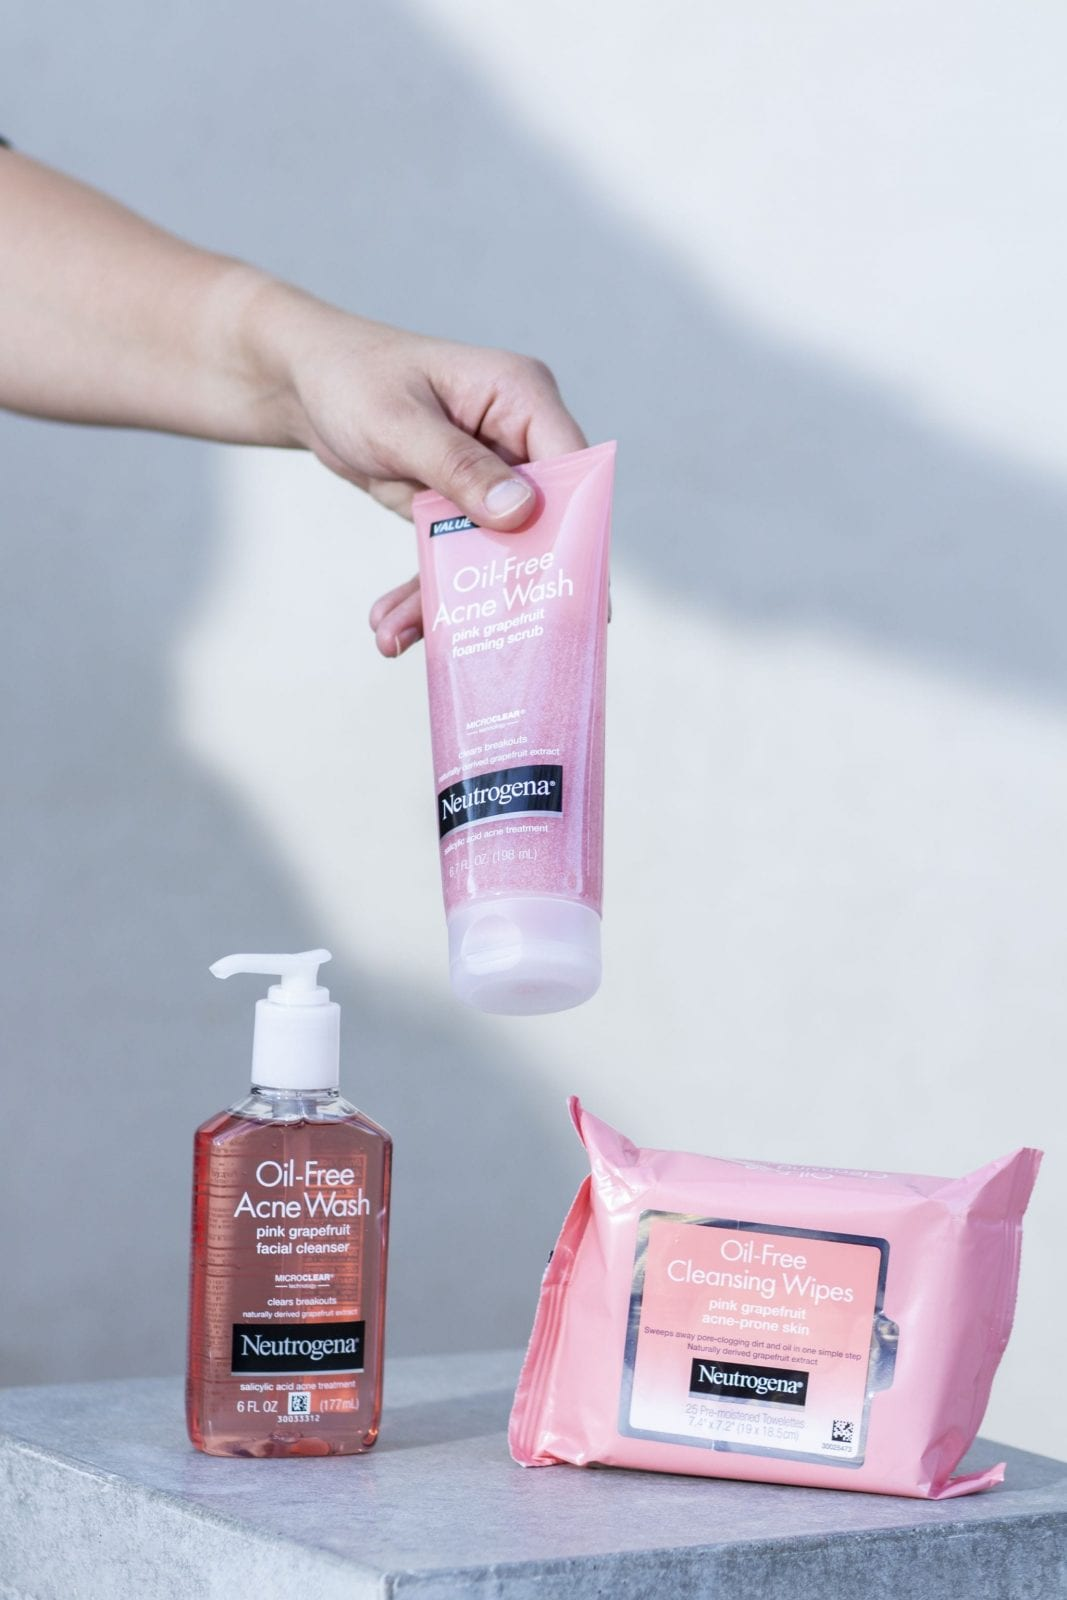 This is a close up of the Neutrogena Grapefruit collection, as I grab the Facial Wash.